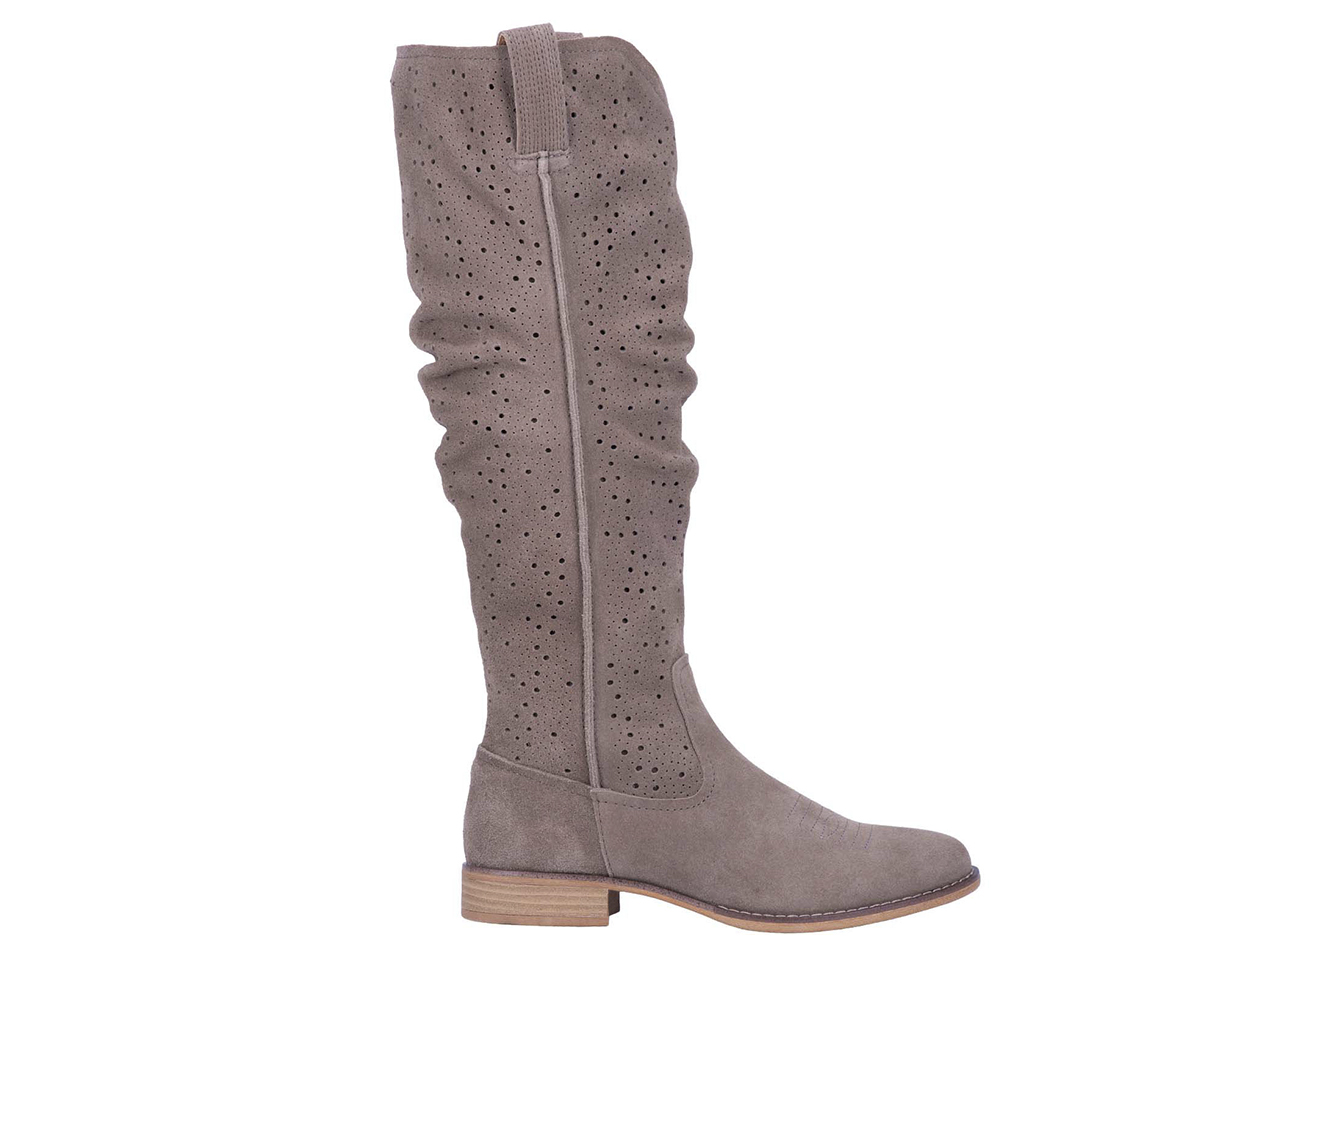 Dingo Boots Adrina Women's Boots (Brown - Leather)